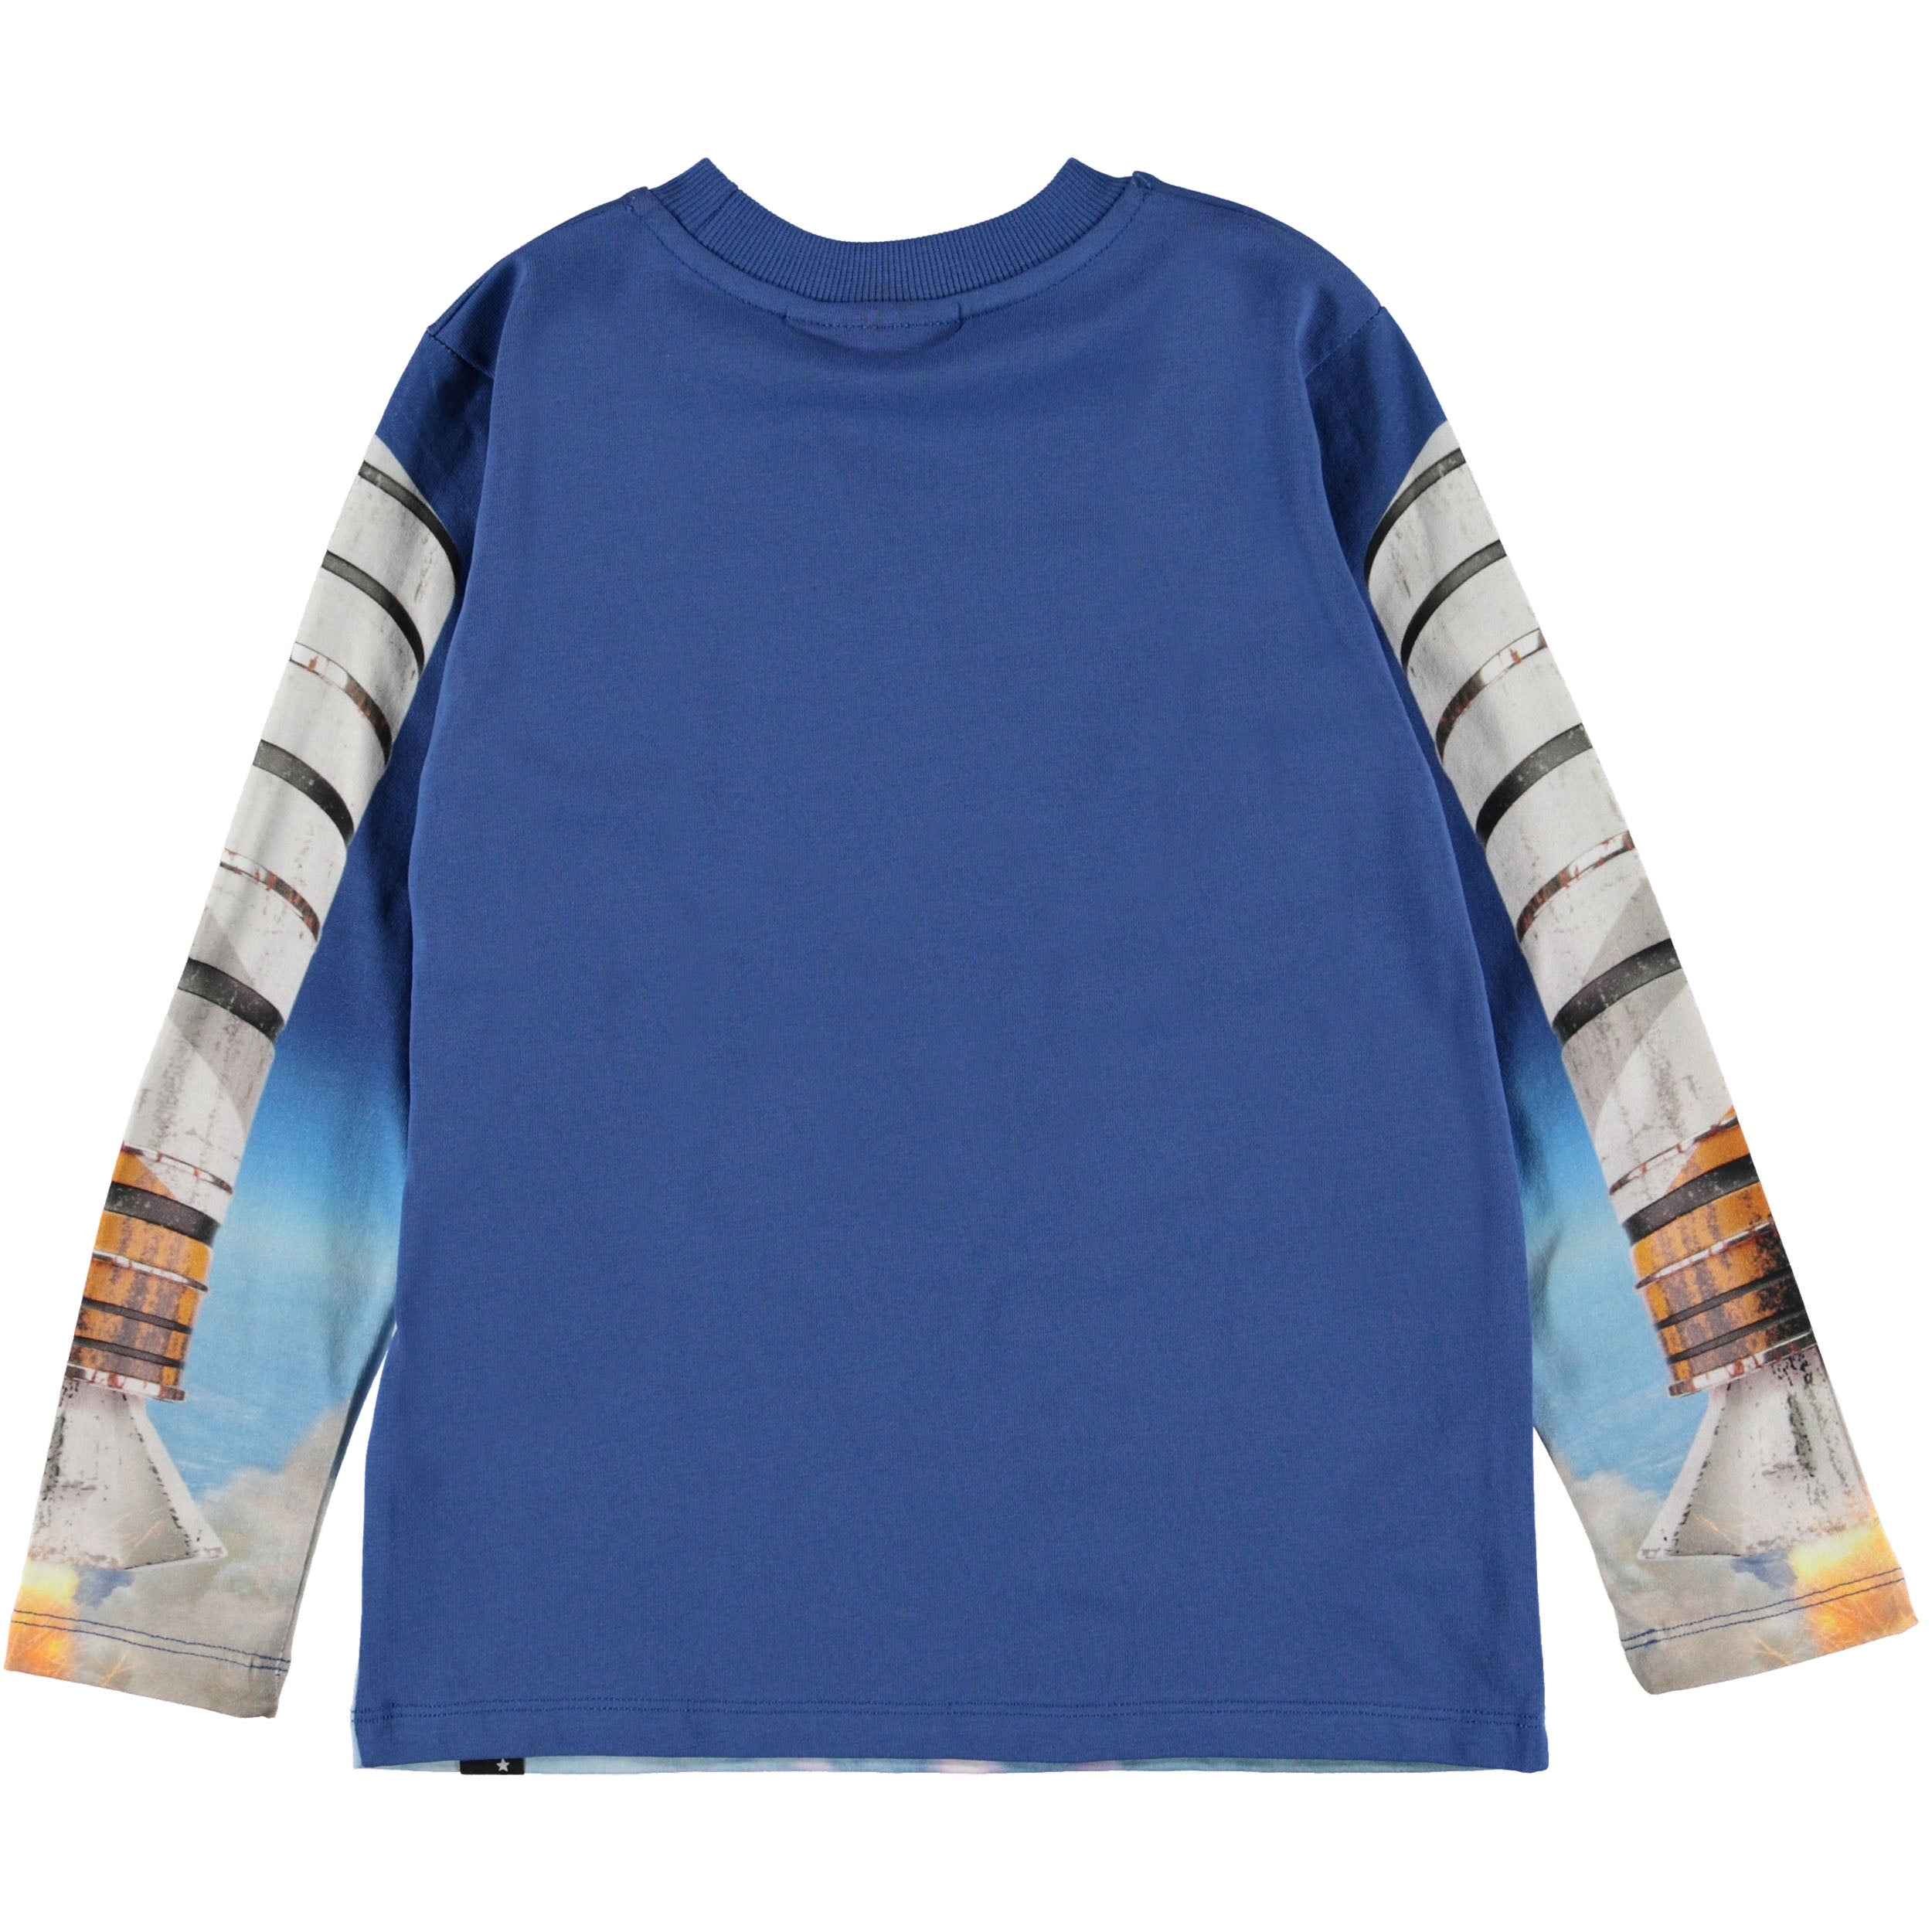 Molo Reif Rocket Launch Top